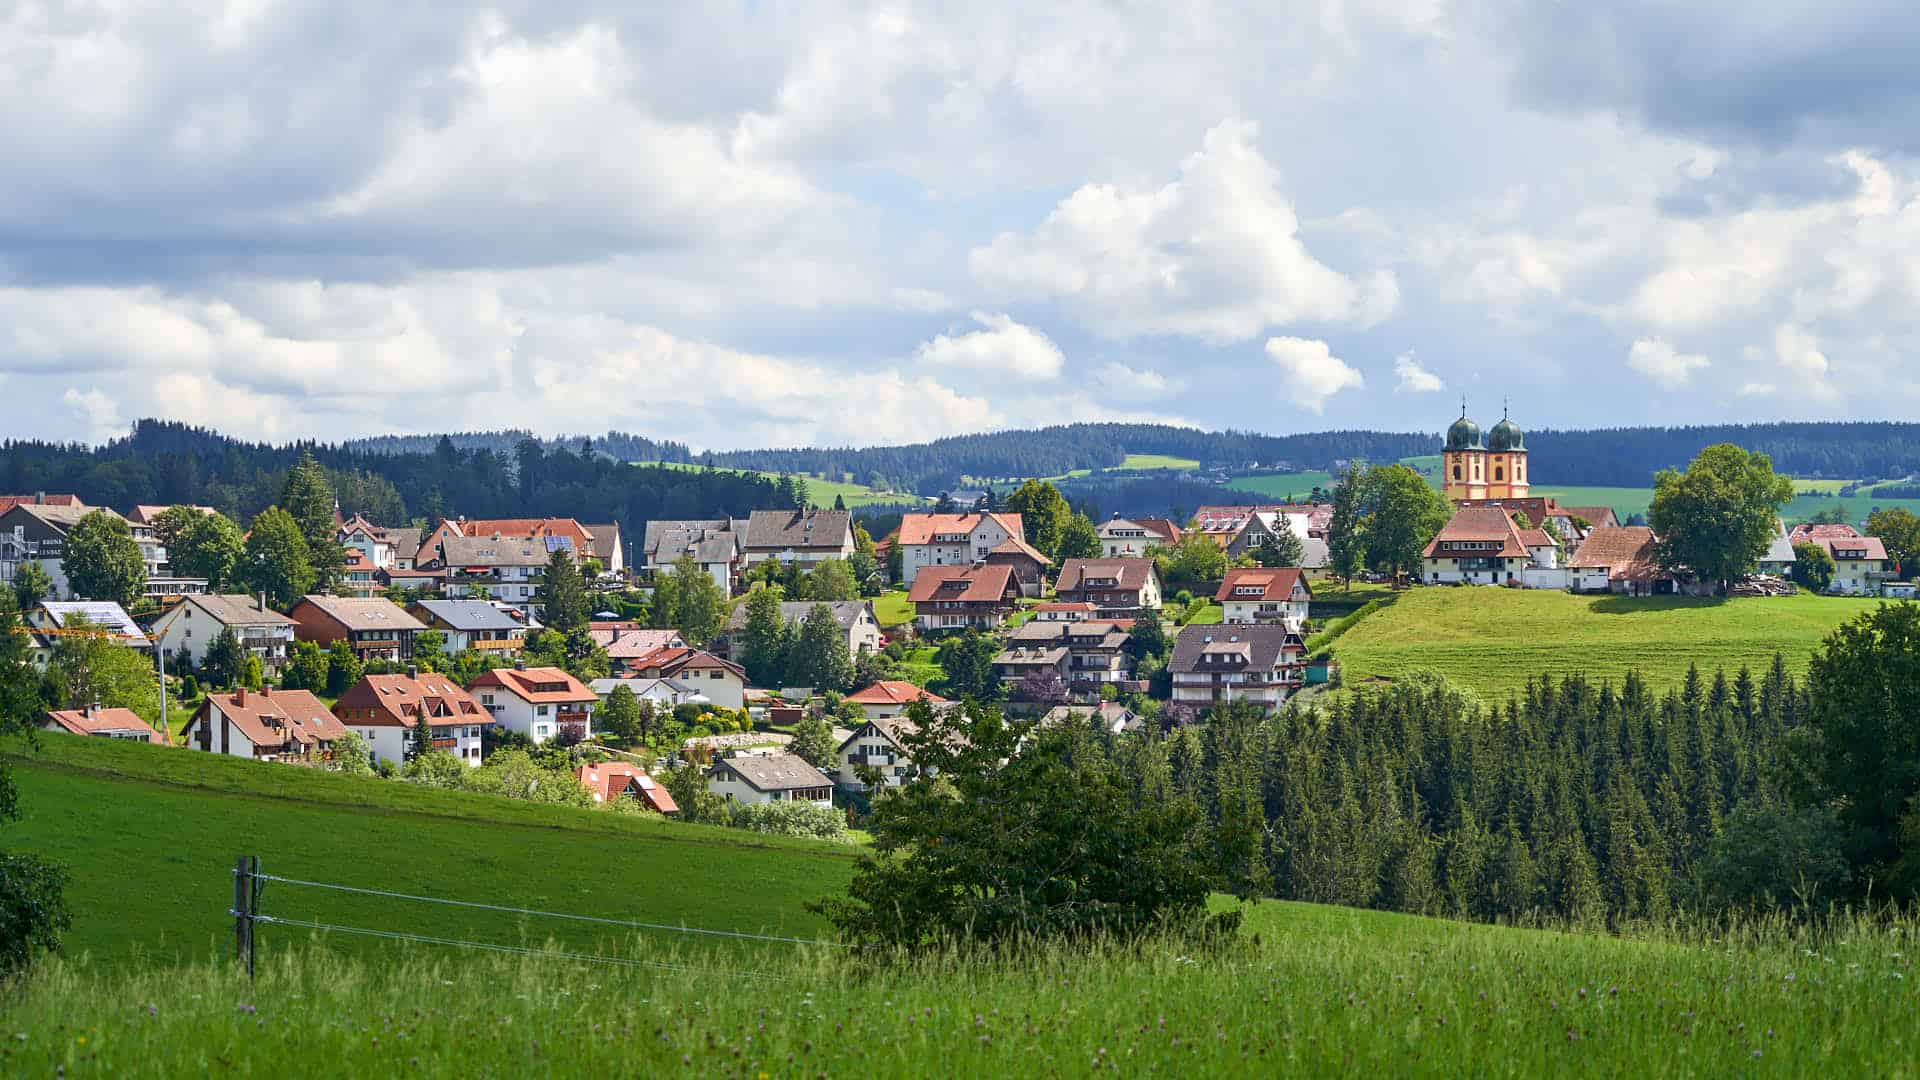 View of Black Forest village